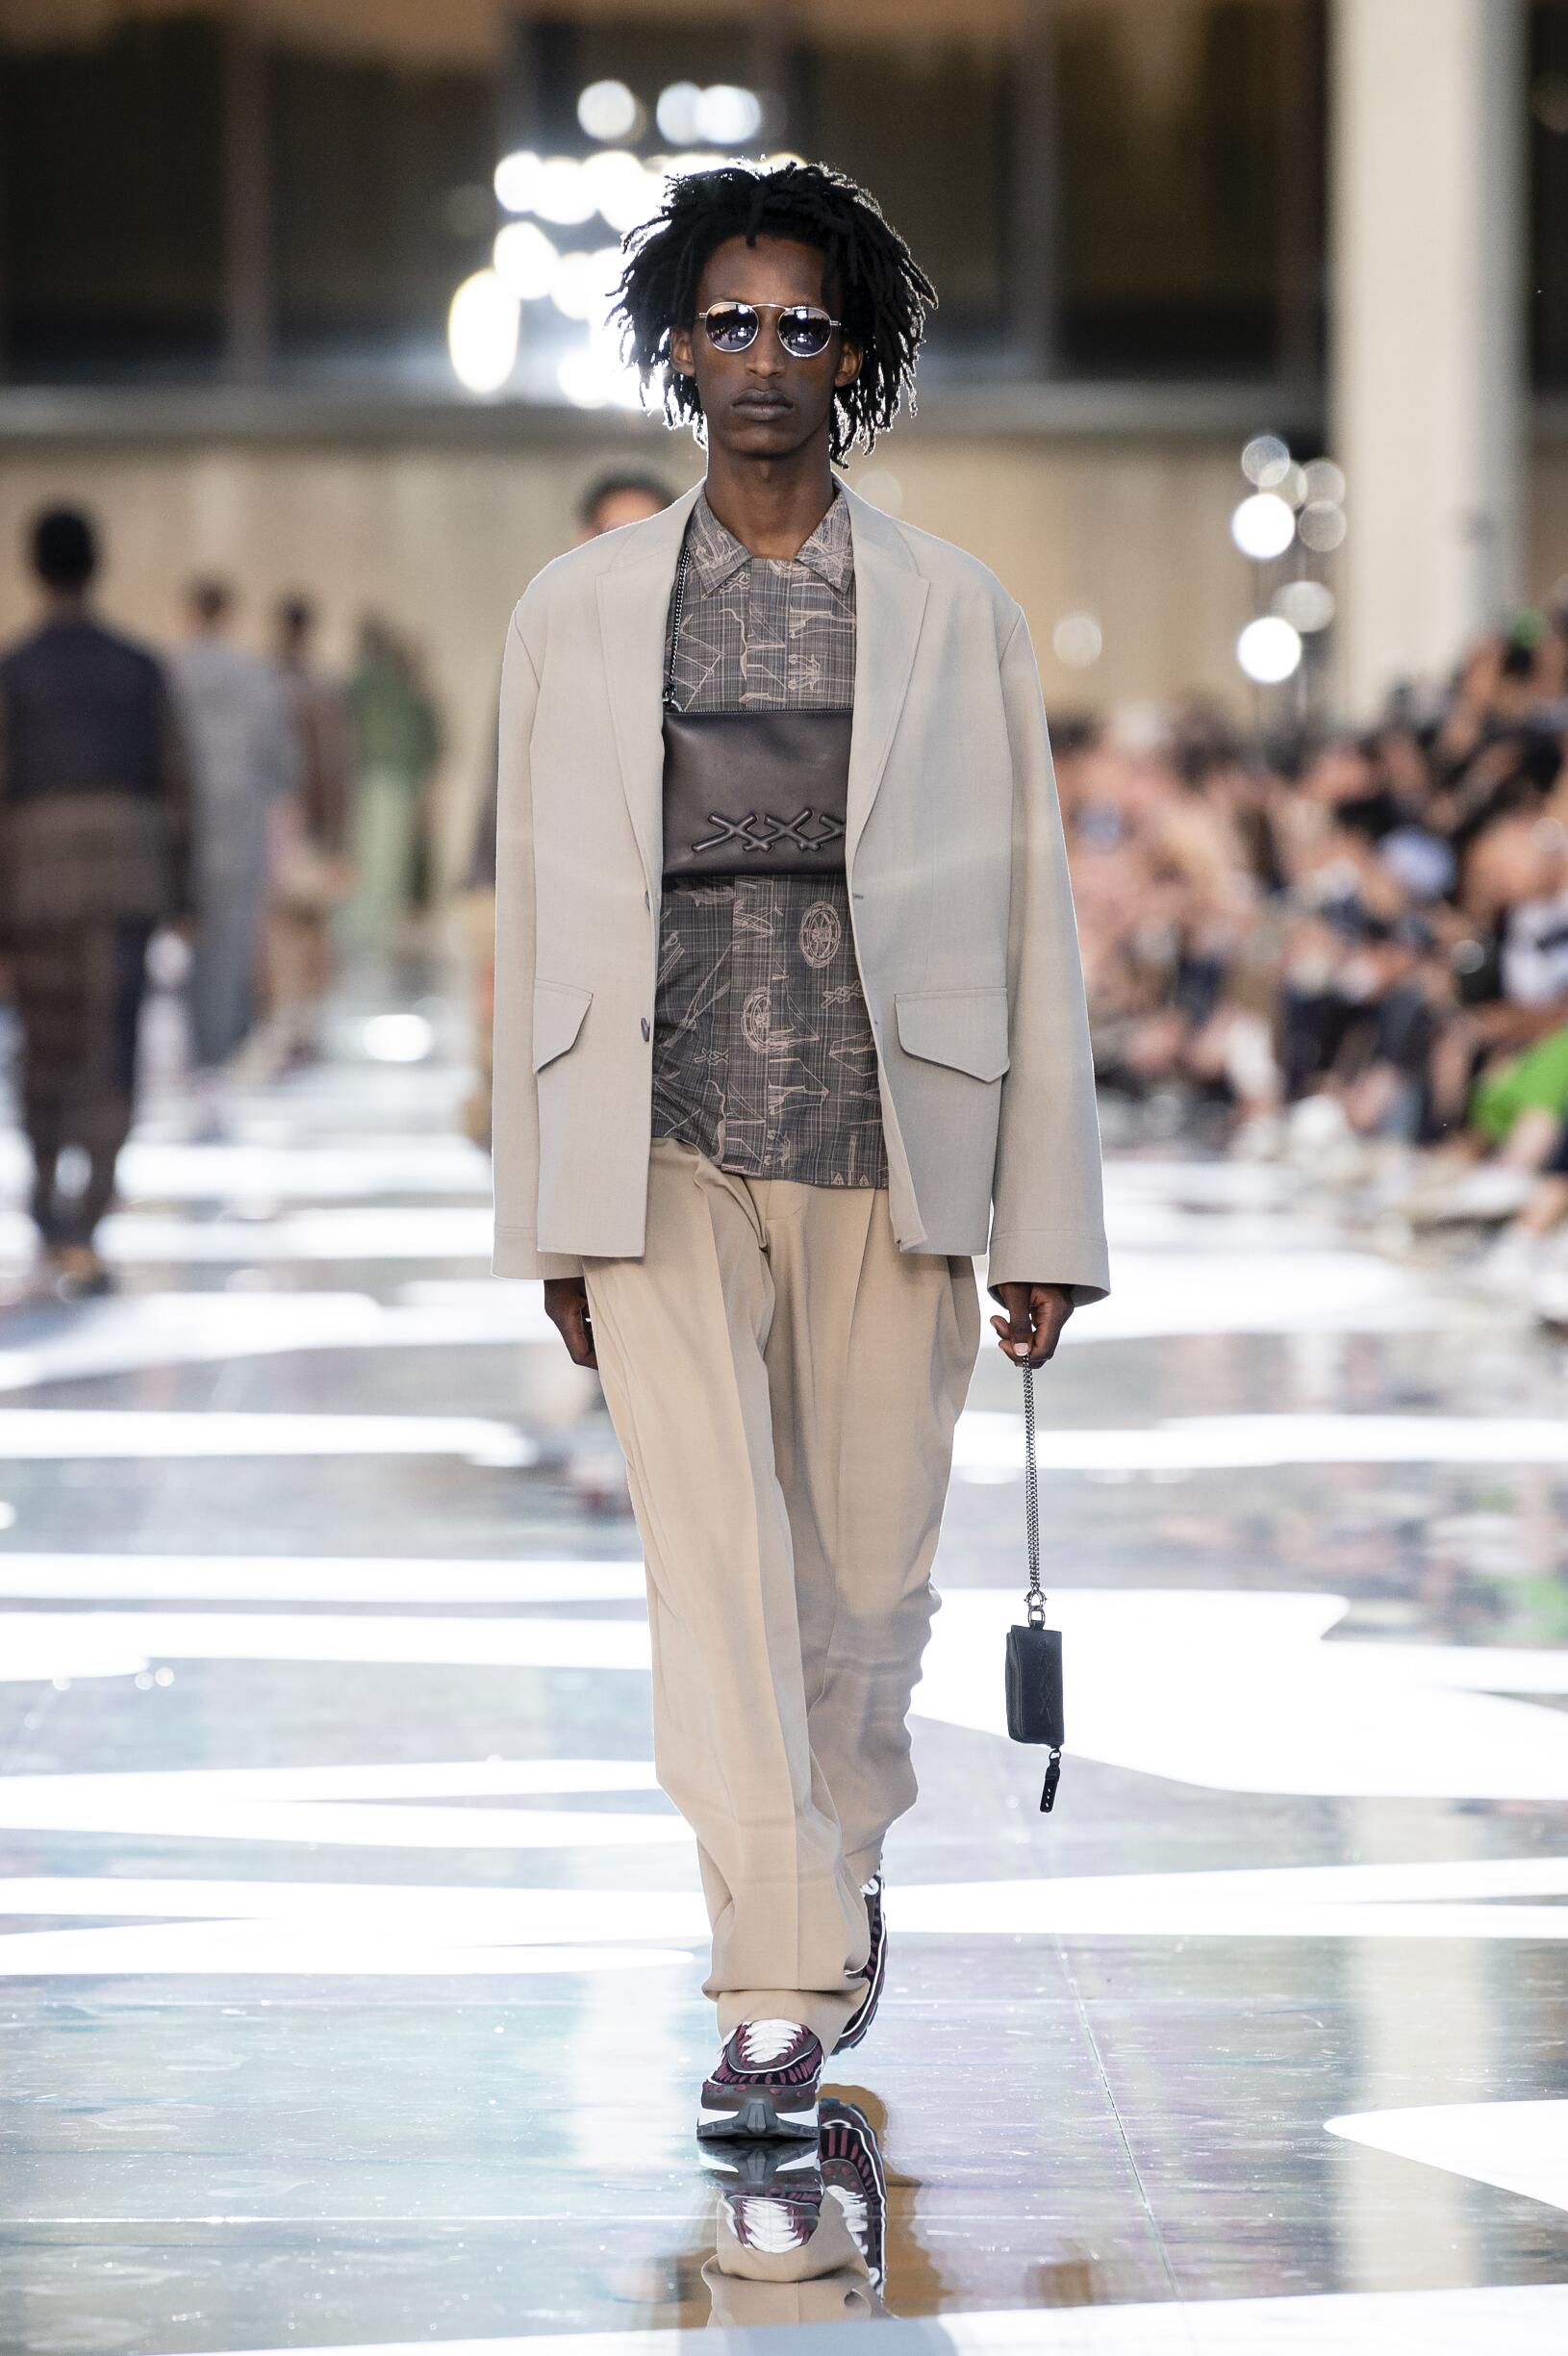 Runway Ermenegildo Zegna Couture Spring Summer 2019 Men's Collection Milan Fashion Week